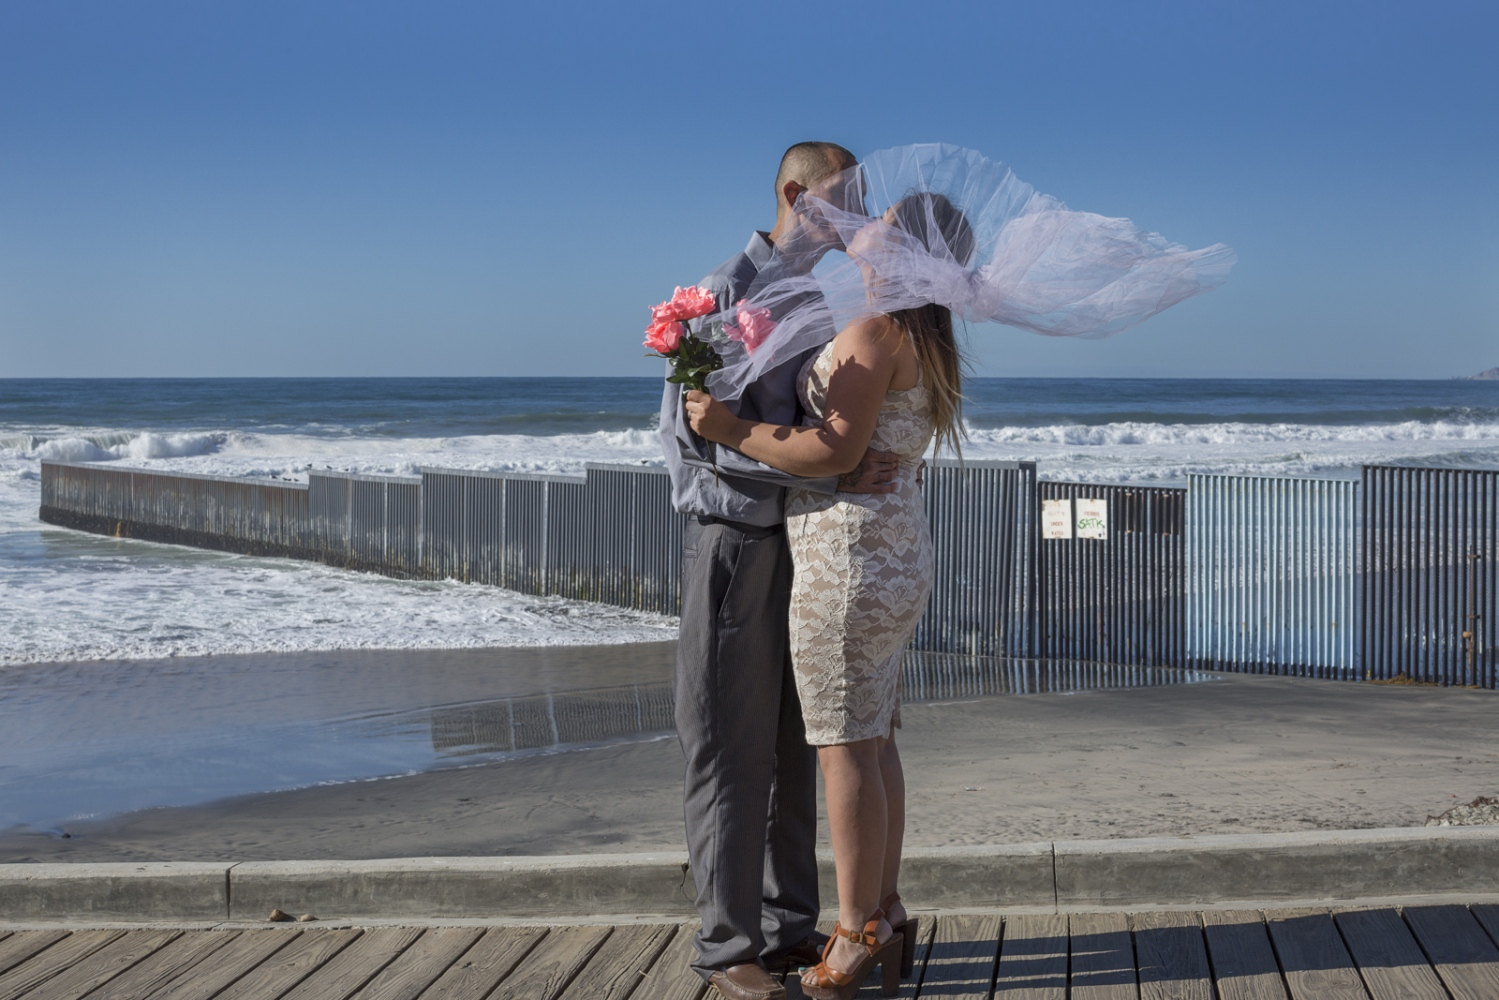 Deported Christian Pastor Jonathan and wife Gladys at their wedding photoshoot in front of the U.S.-Mexico border fence in Playas de Tijuana, Mexico.